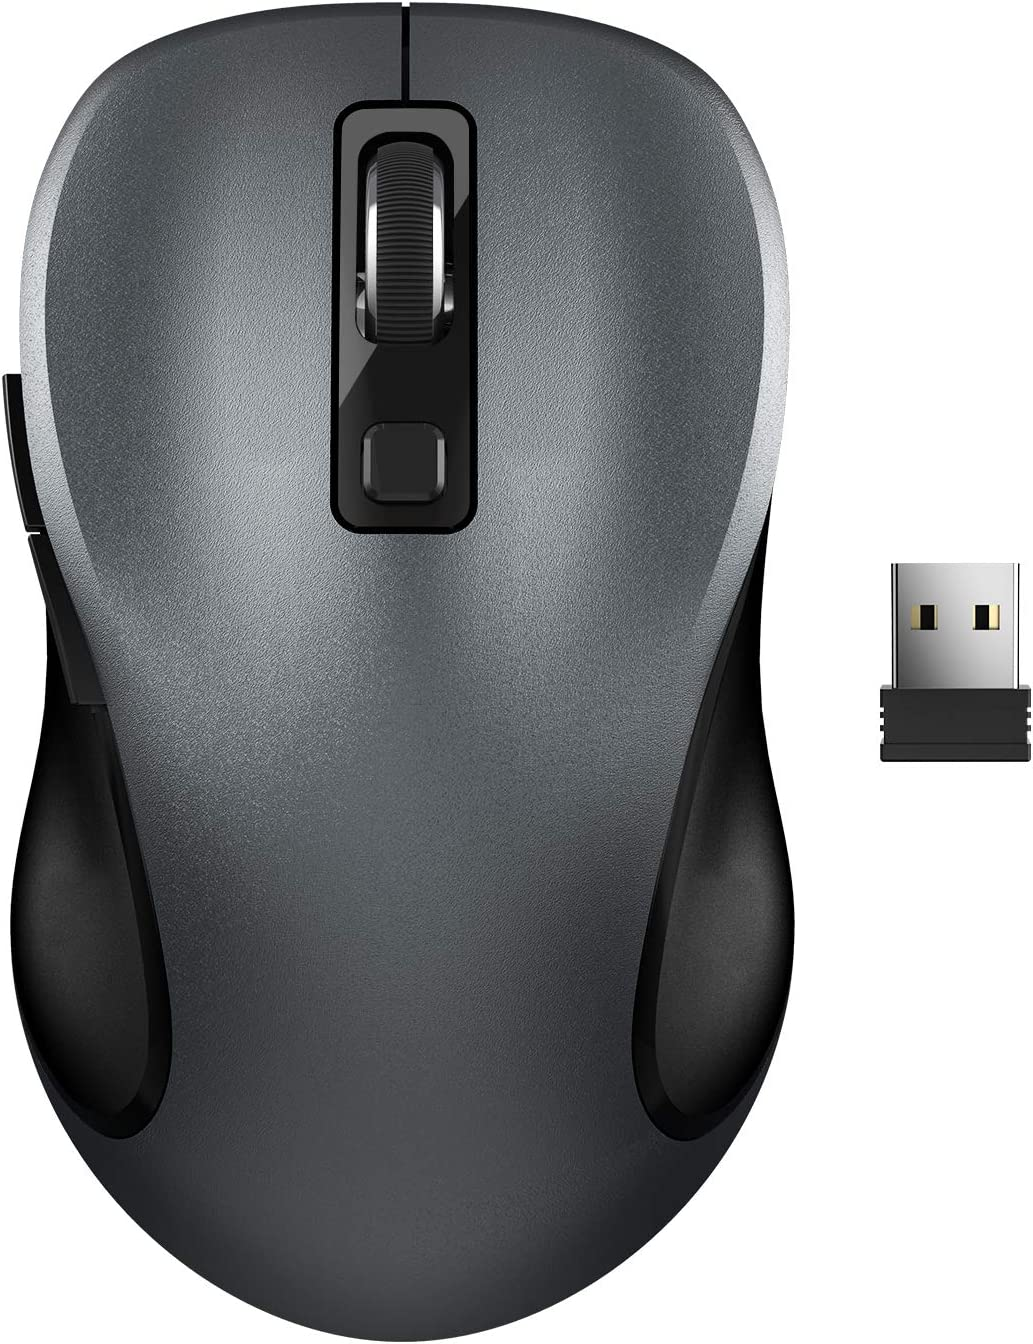 Wireless Mouse, RATEL 2.4G Wireless Ergonomic Mouse Computer Mouse Laptop Mouse USB Mouse 6 Buttons with Nano Receiver 3 Adjustable DPI Levels Cordless Wireless Mice for Windows, Mac(Black)